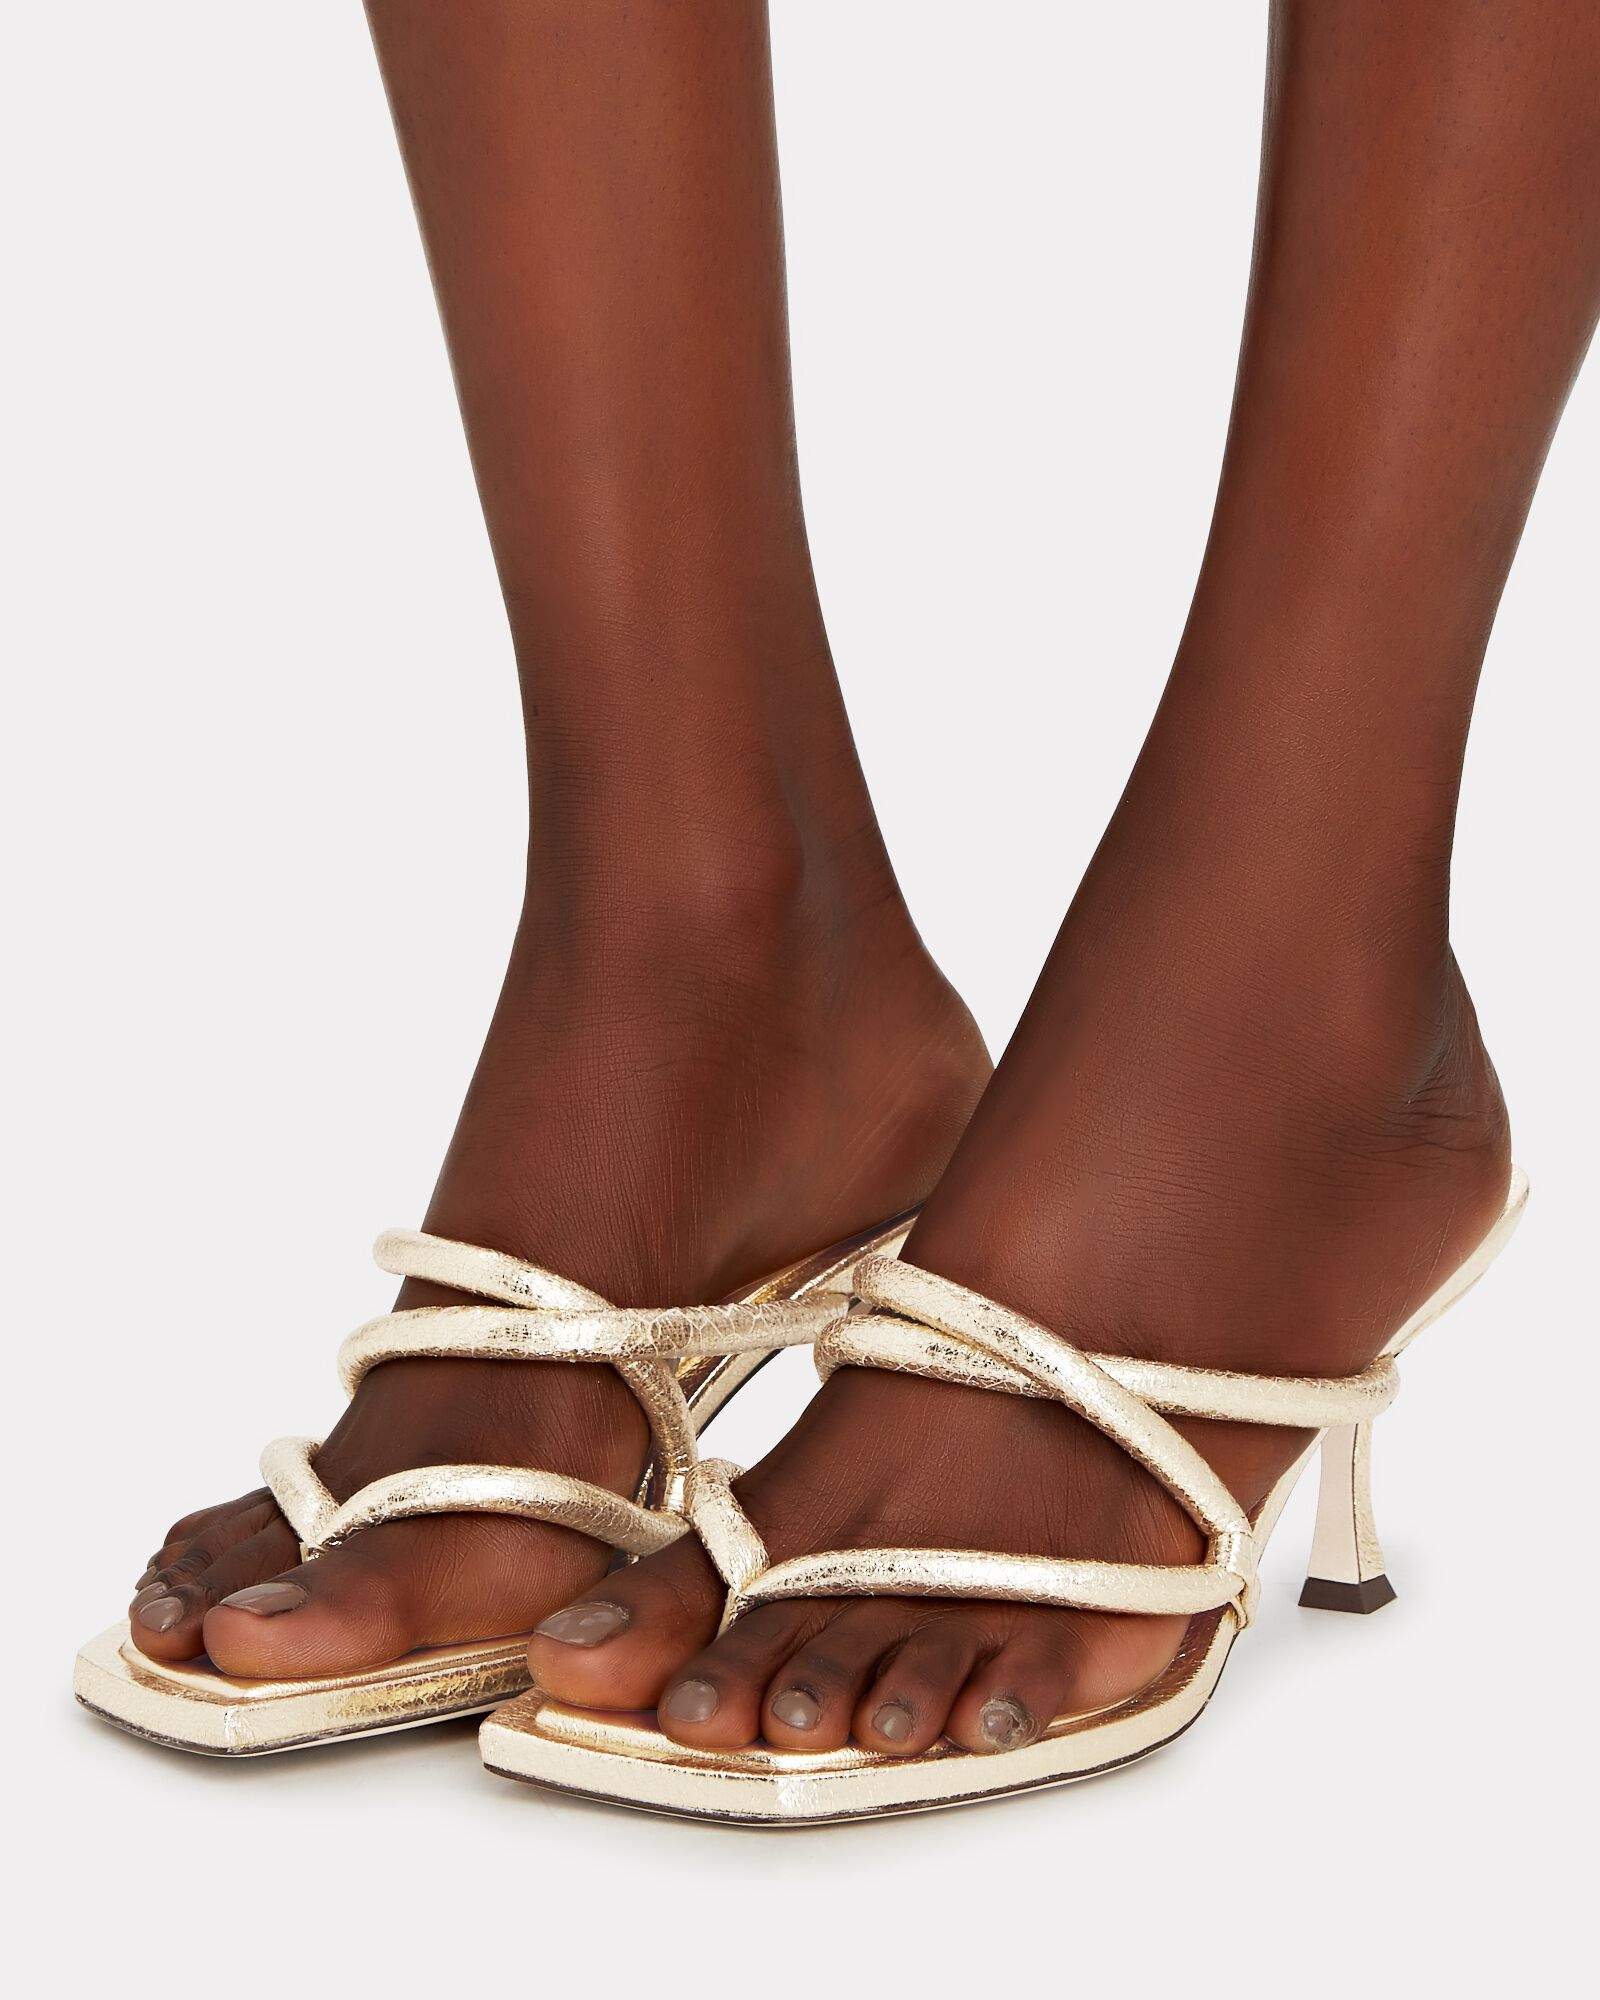 70 Puffy Leather Thong Sandals, GOLD,